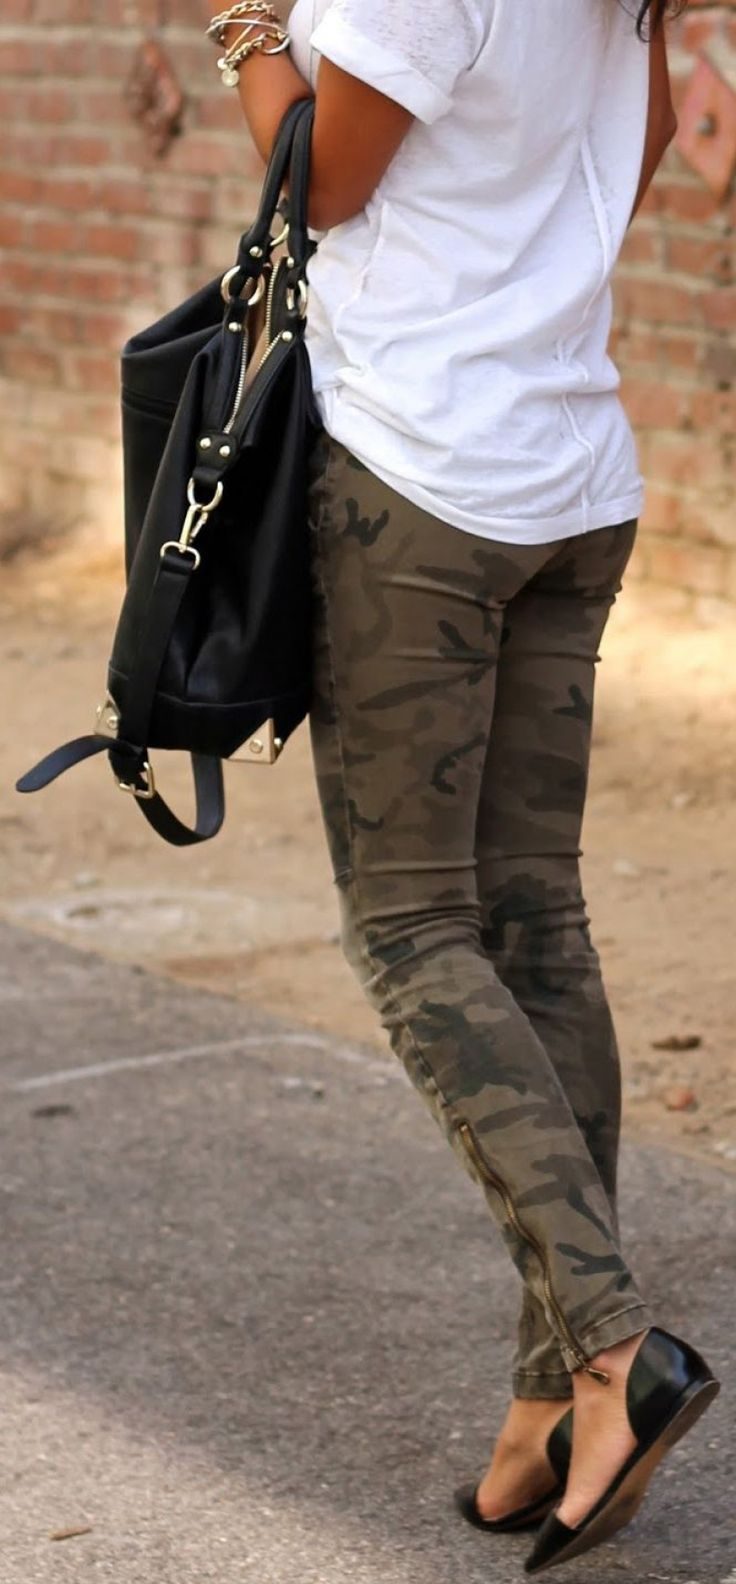 Best summer style - Best Street Style - 15 Military pants; fashion trend for this season